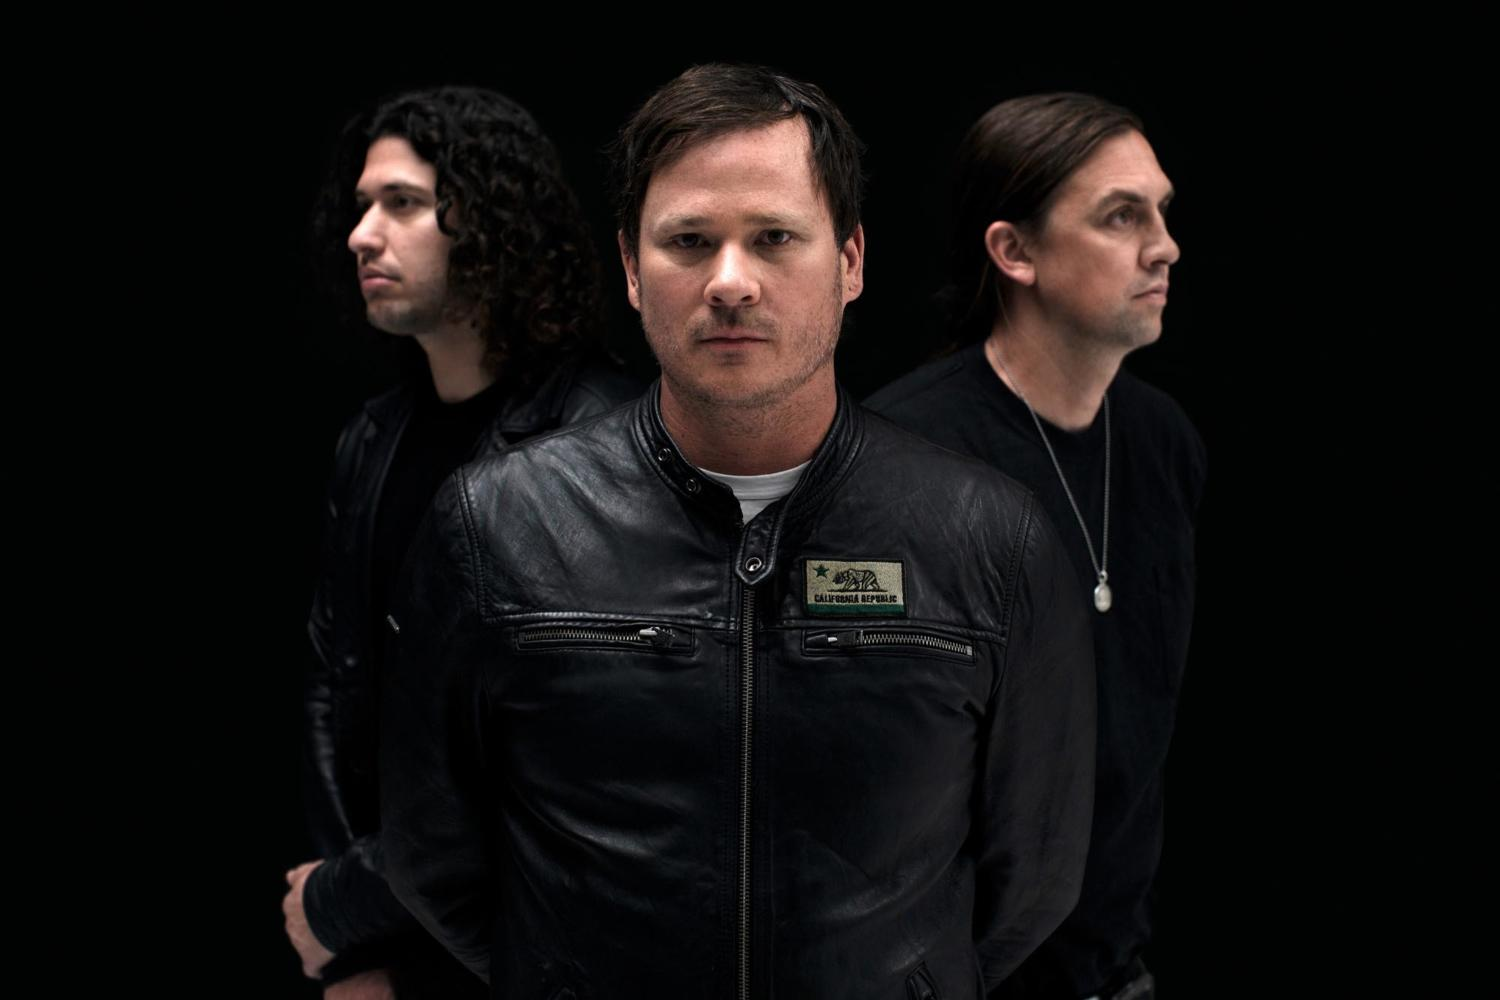 Angels & Airwaves return with new song 'Rebel Girl', announce US tour